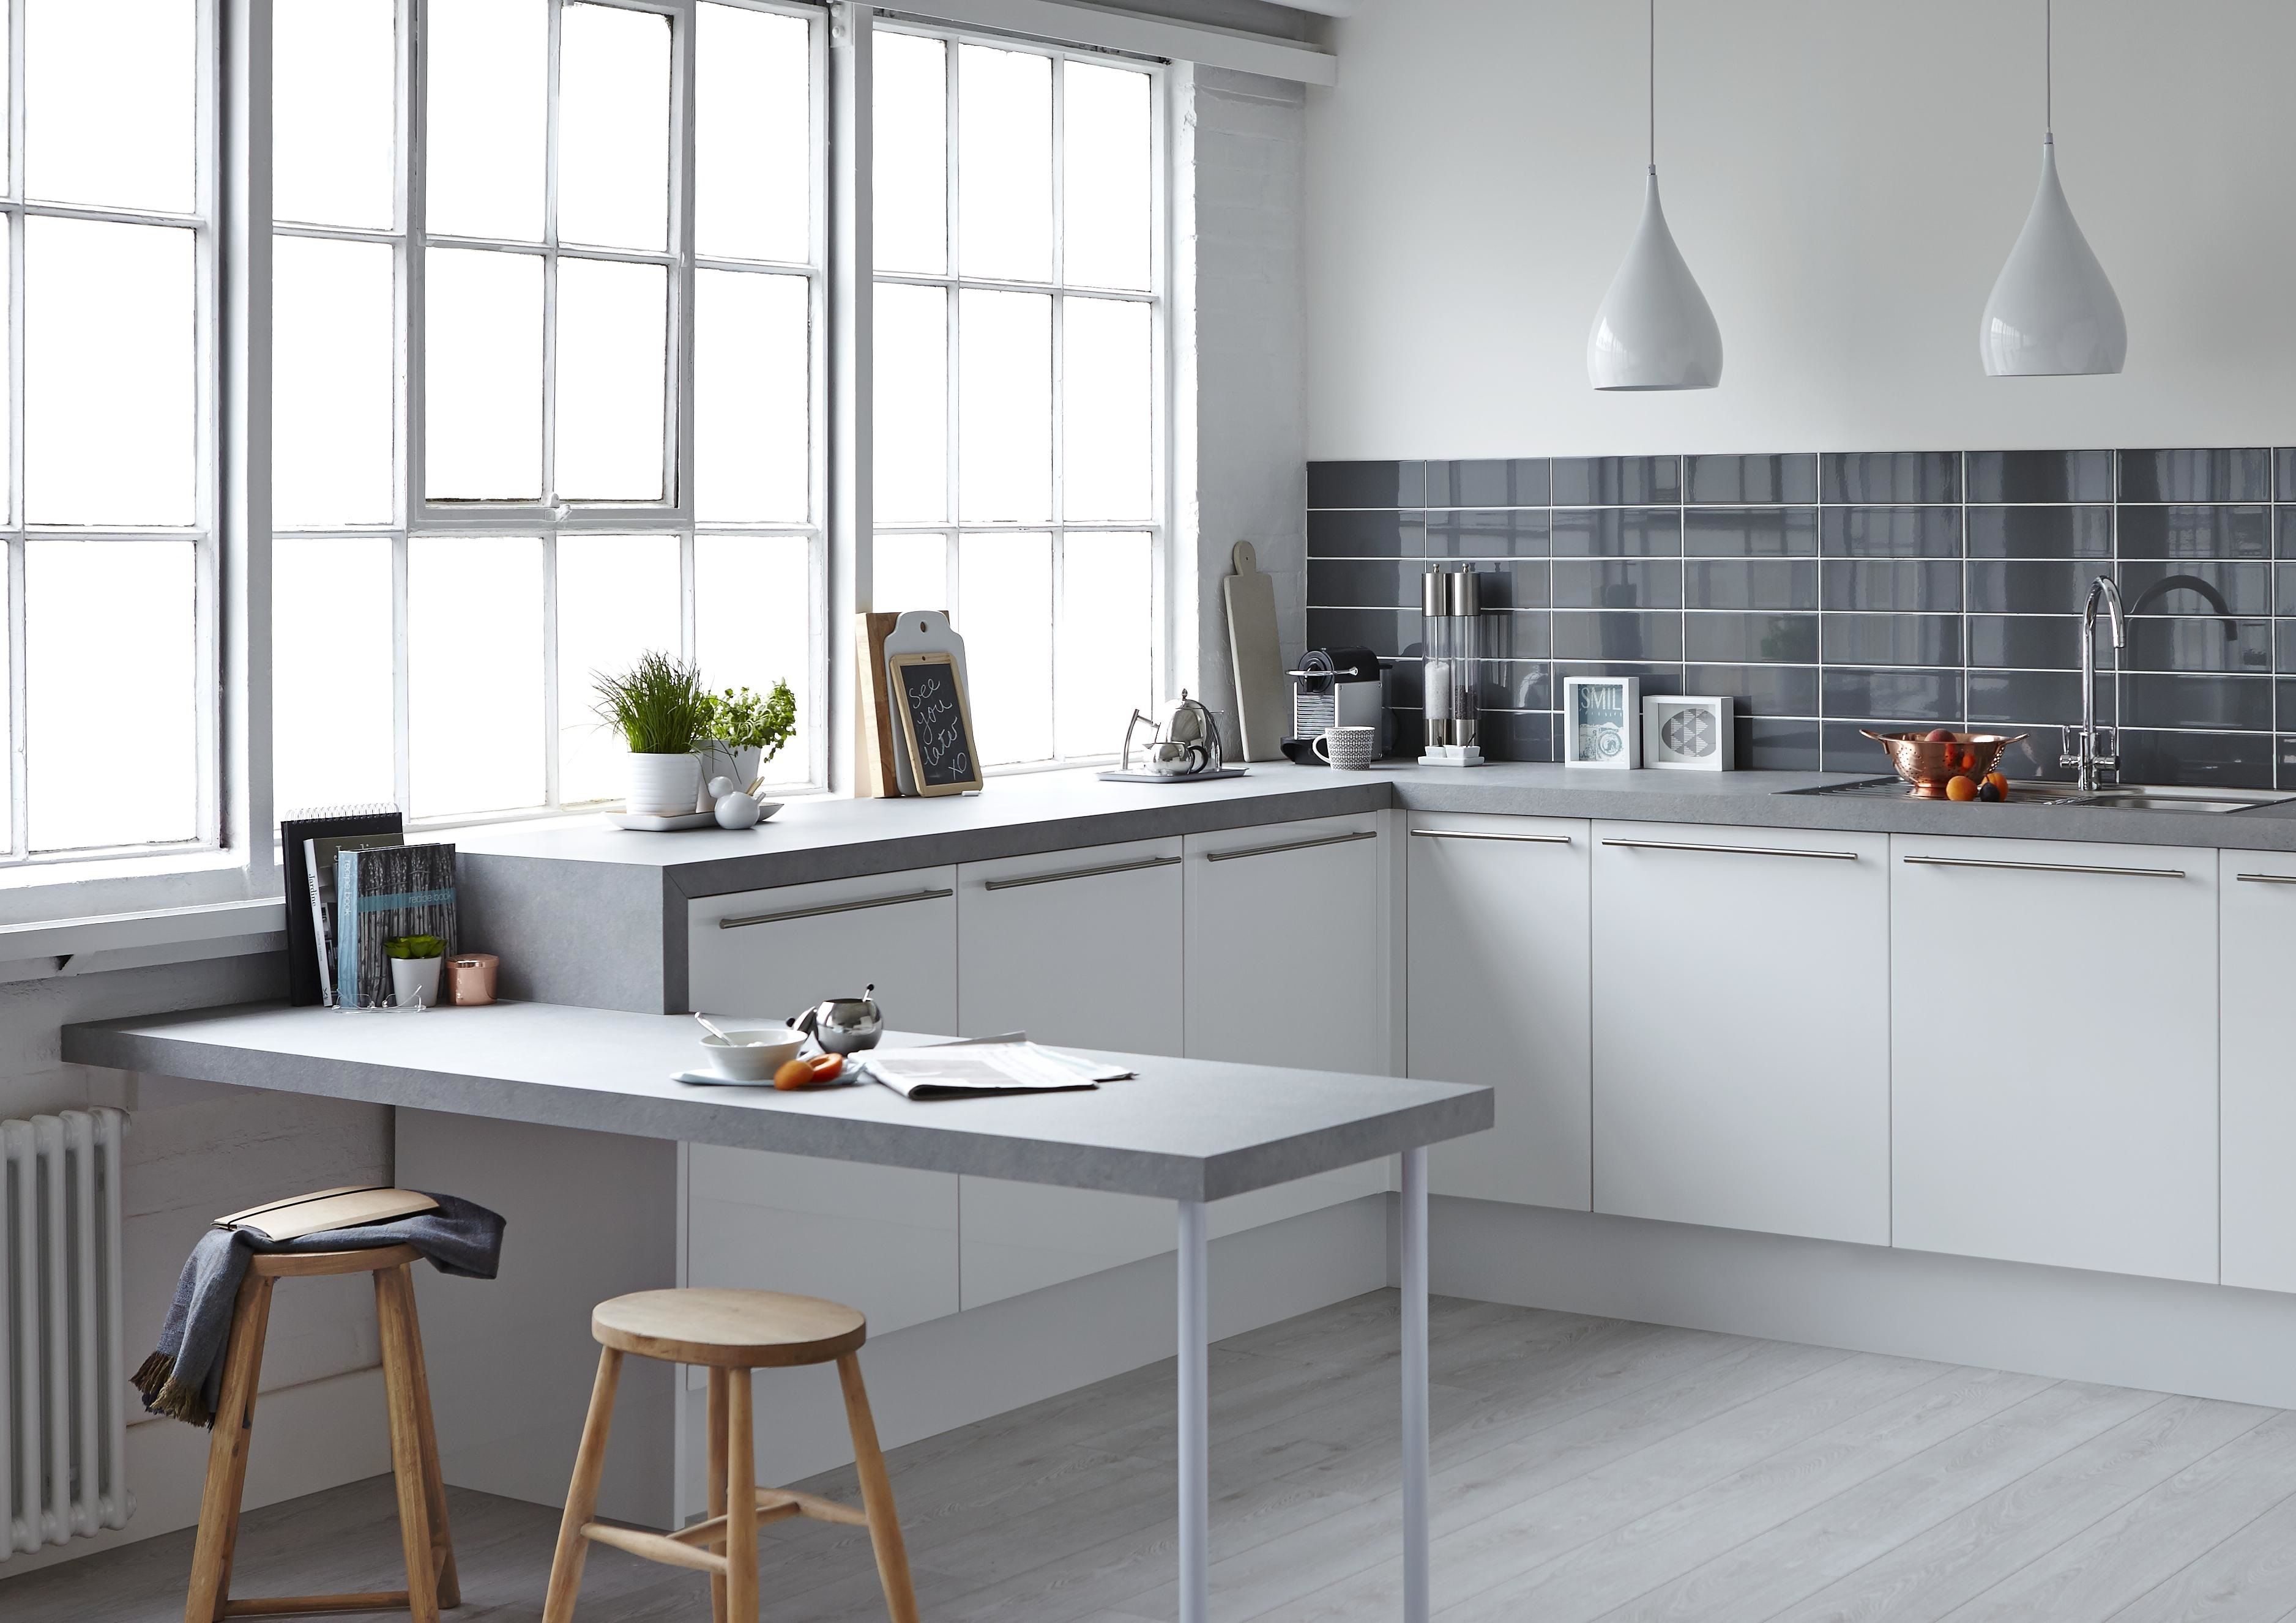 Soft greys add warmth and light to your room. Pair with